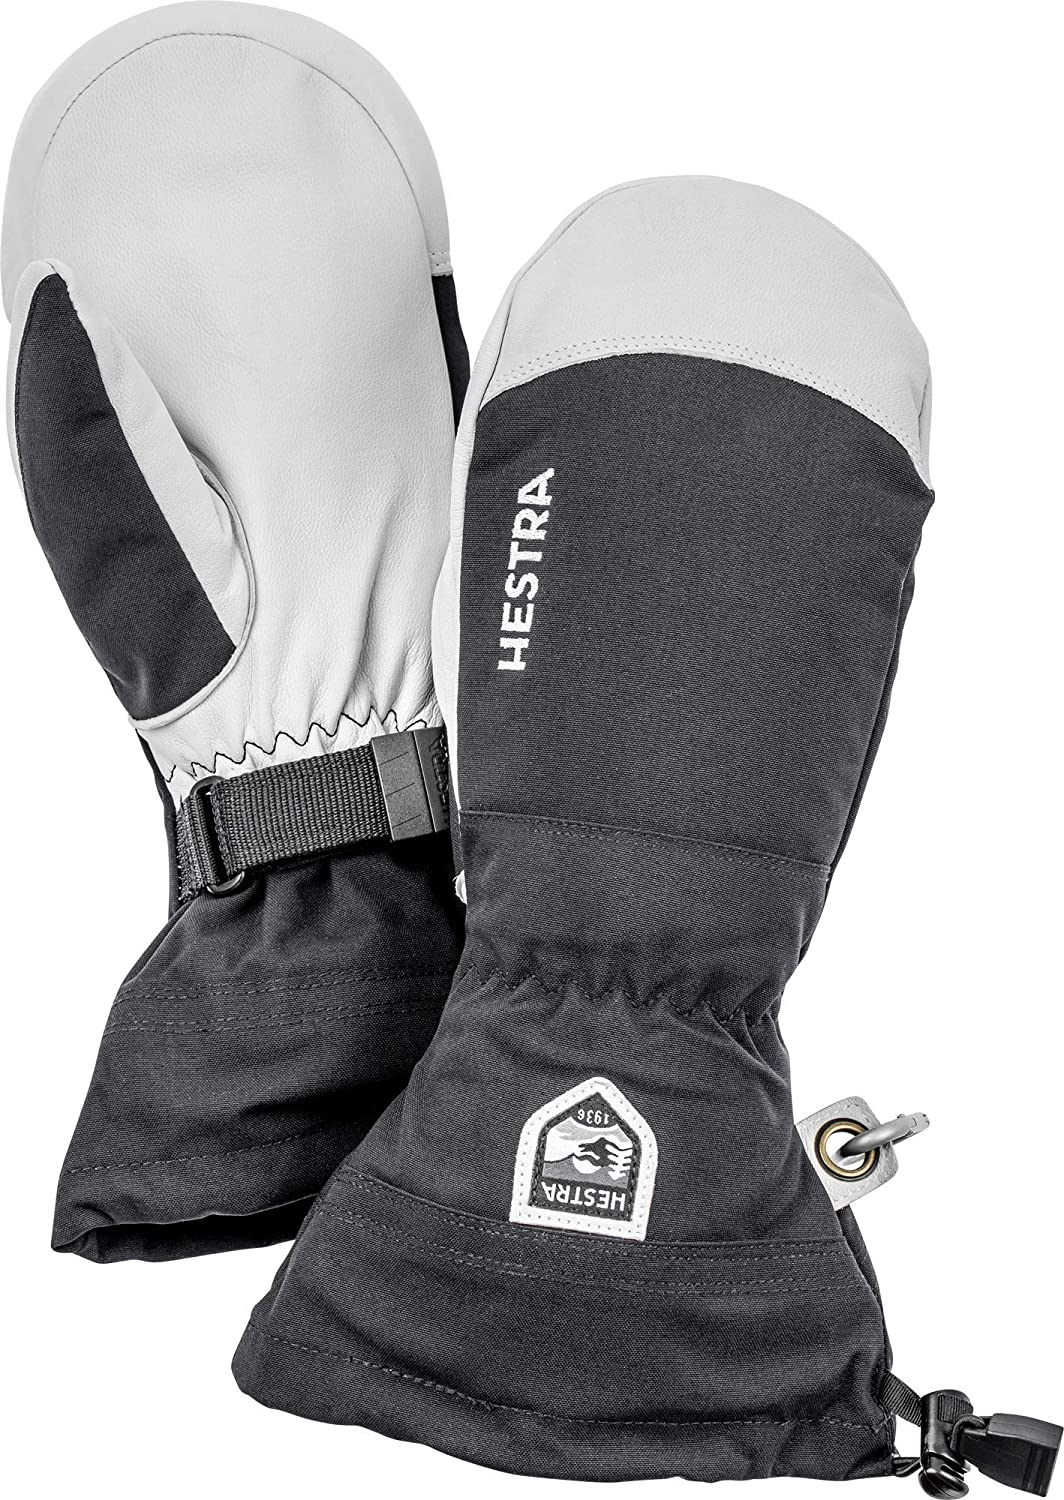 Hestra Army Leather Heli Ski Glove - Classic Snow Mitten for Skiing and Mountaineering: Clothing